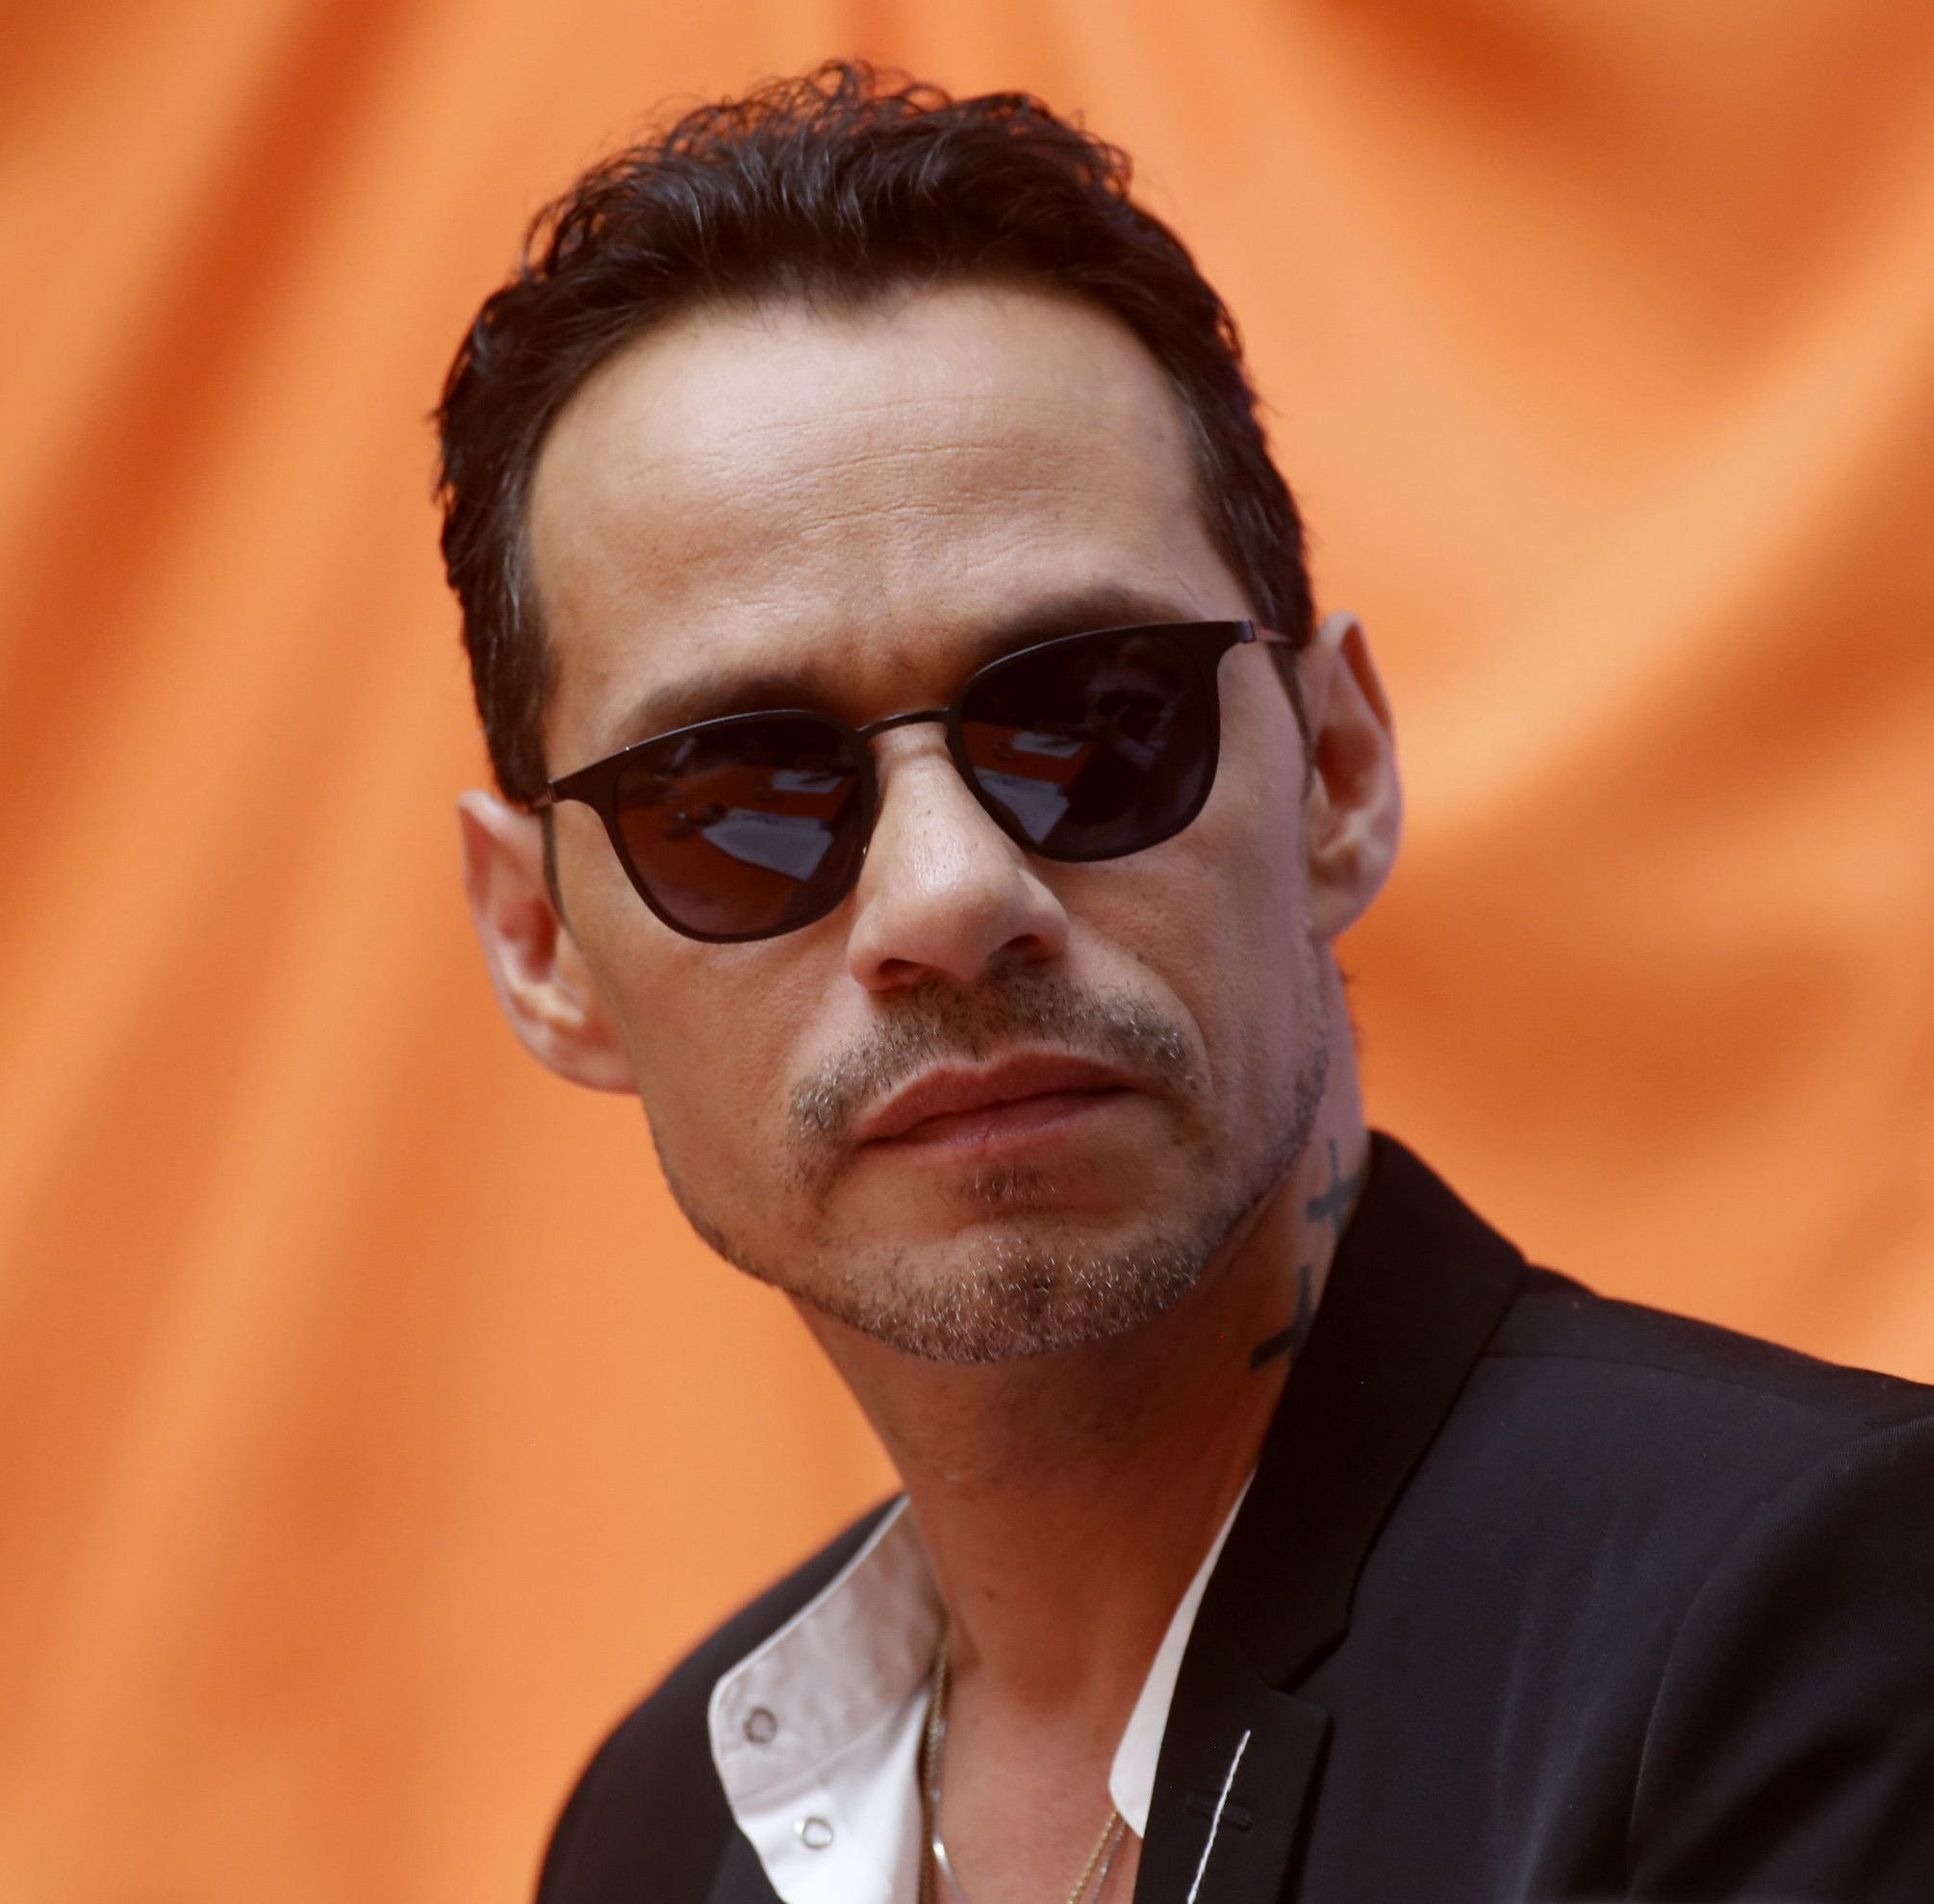 Marc Anthony, Johnny Mathis among hot tickets Jan. 25-Feb. 1 in Florida